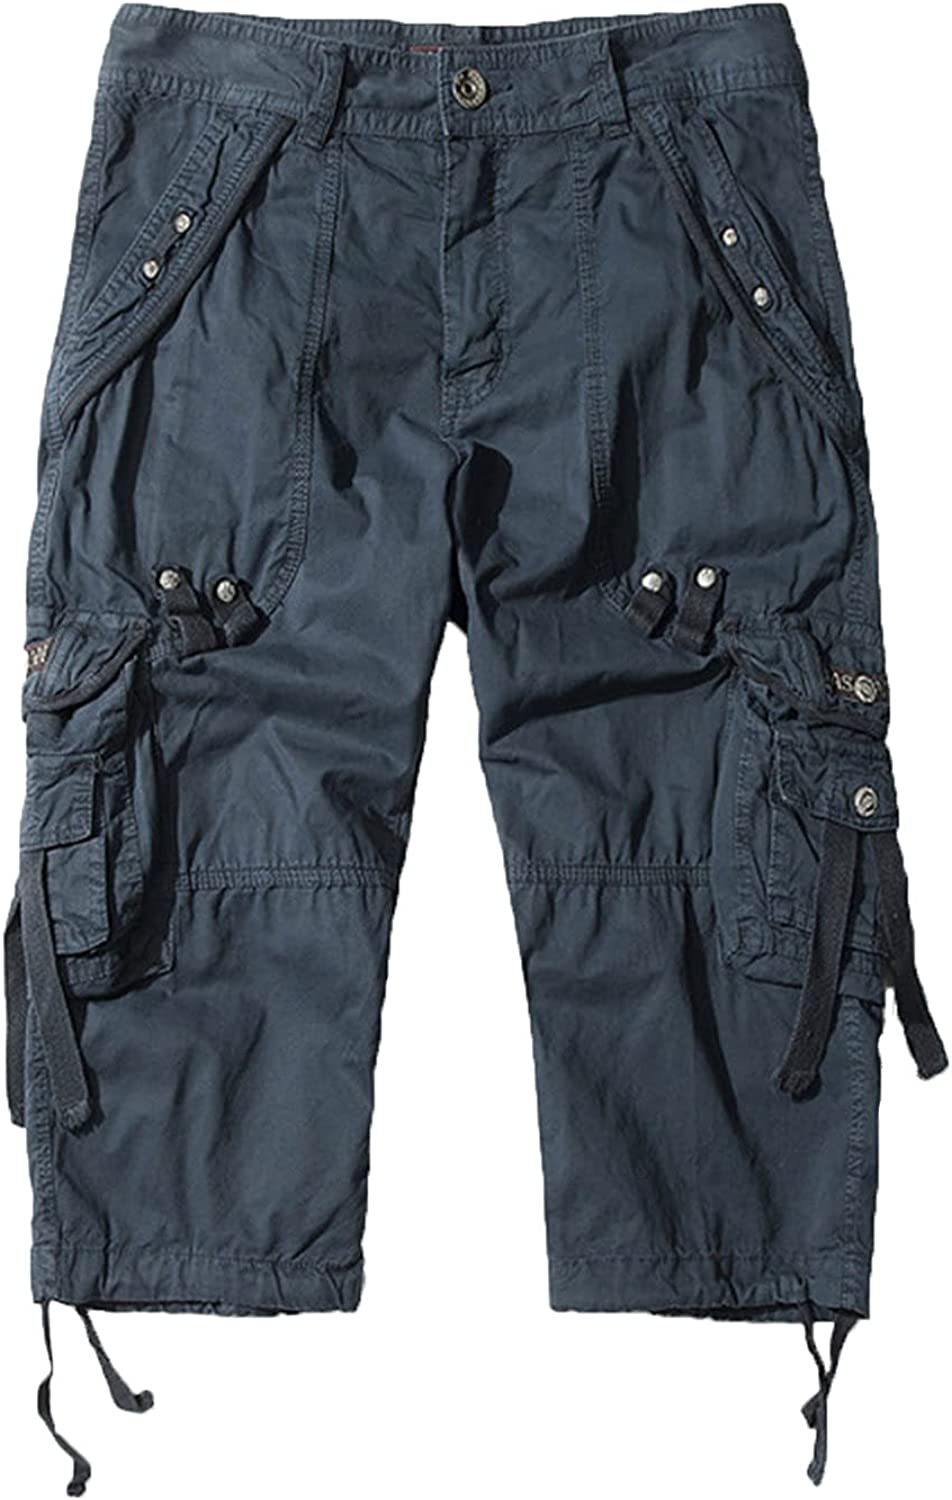 Men's Casual Straight Workout Cargo Short Multi Pockets Durable Baggy Work Short-pant Below Knee Long Loose Shorts